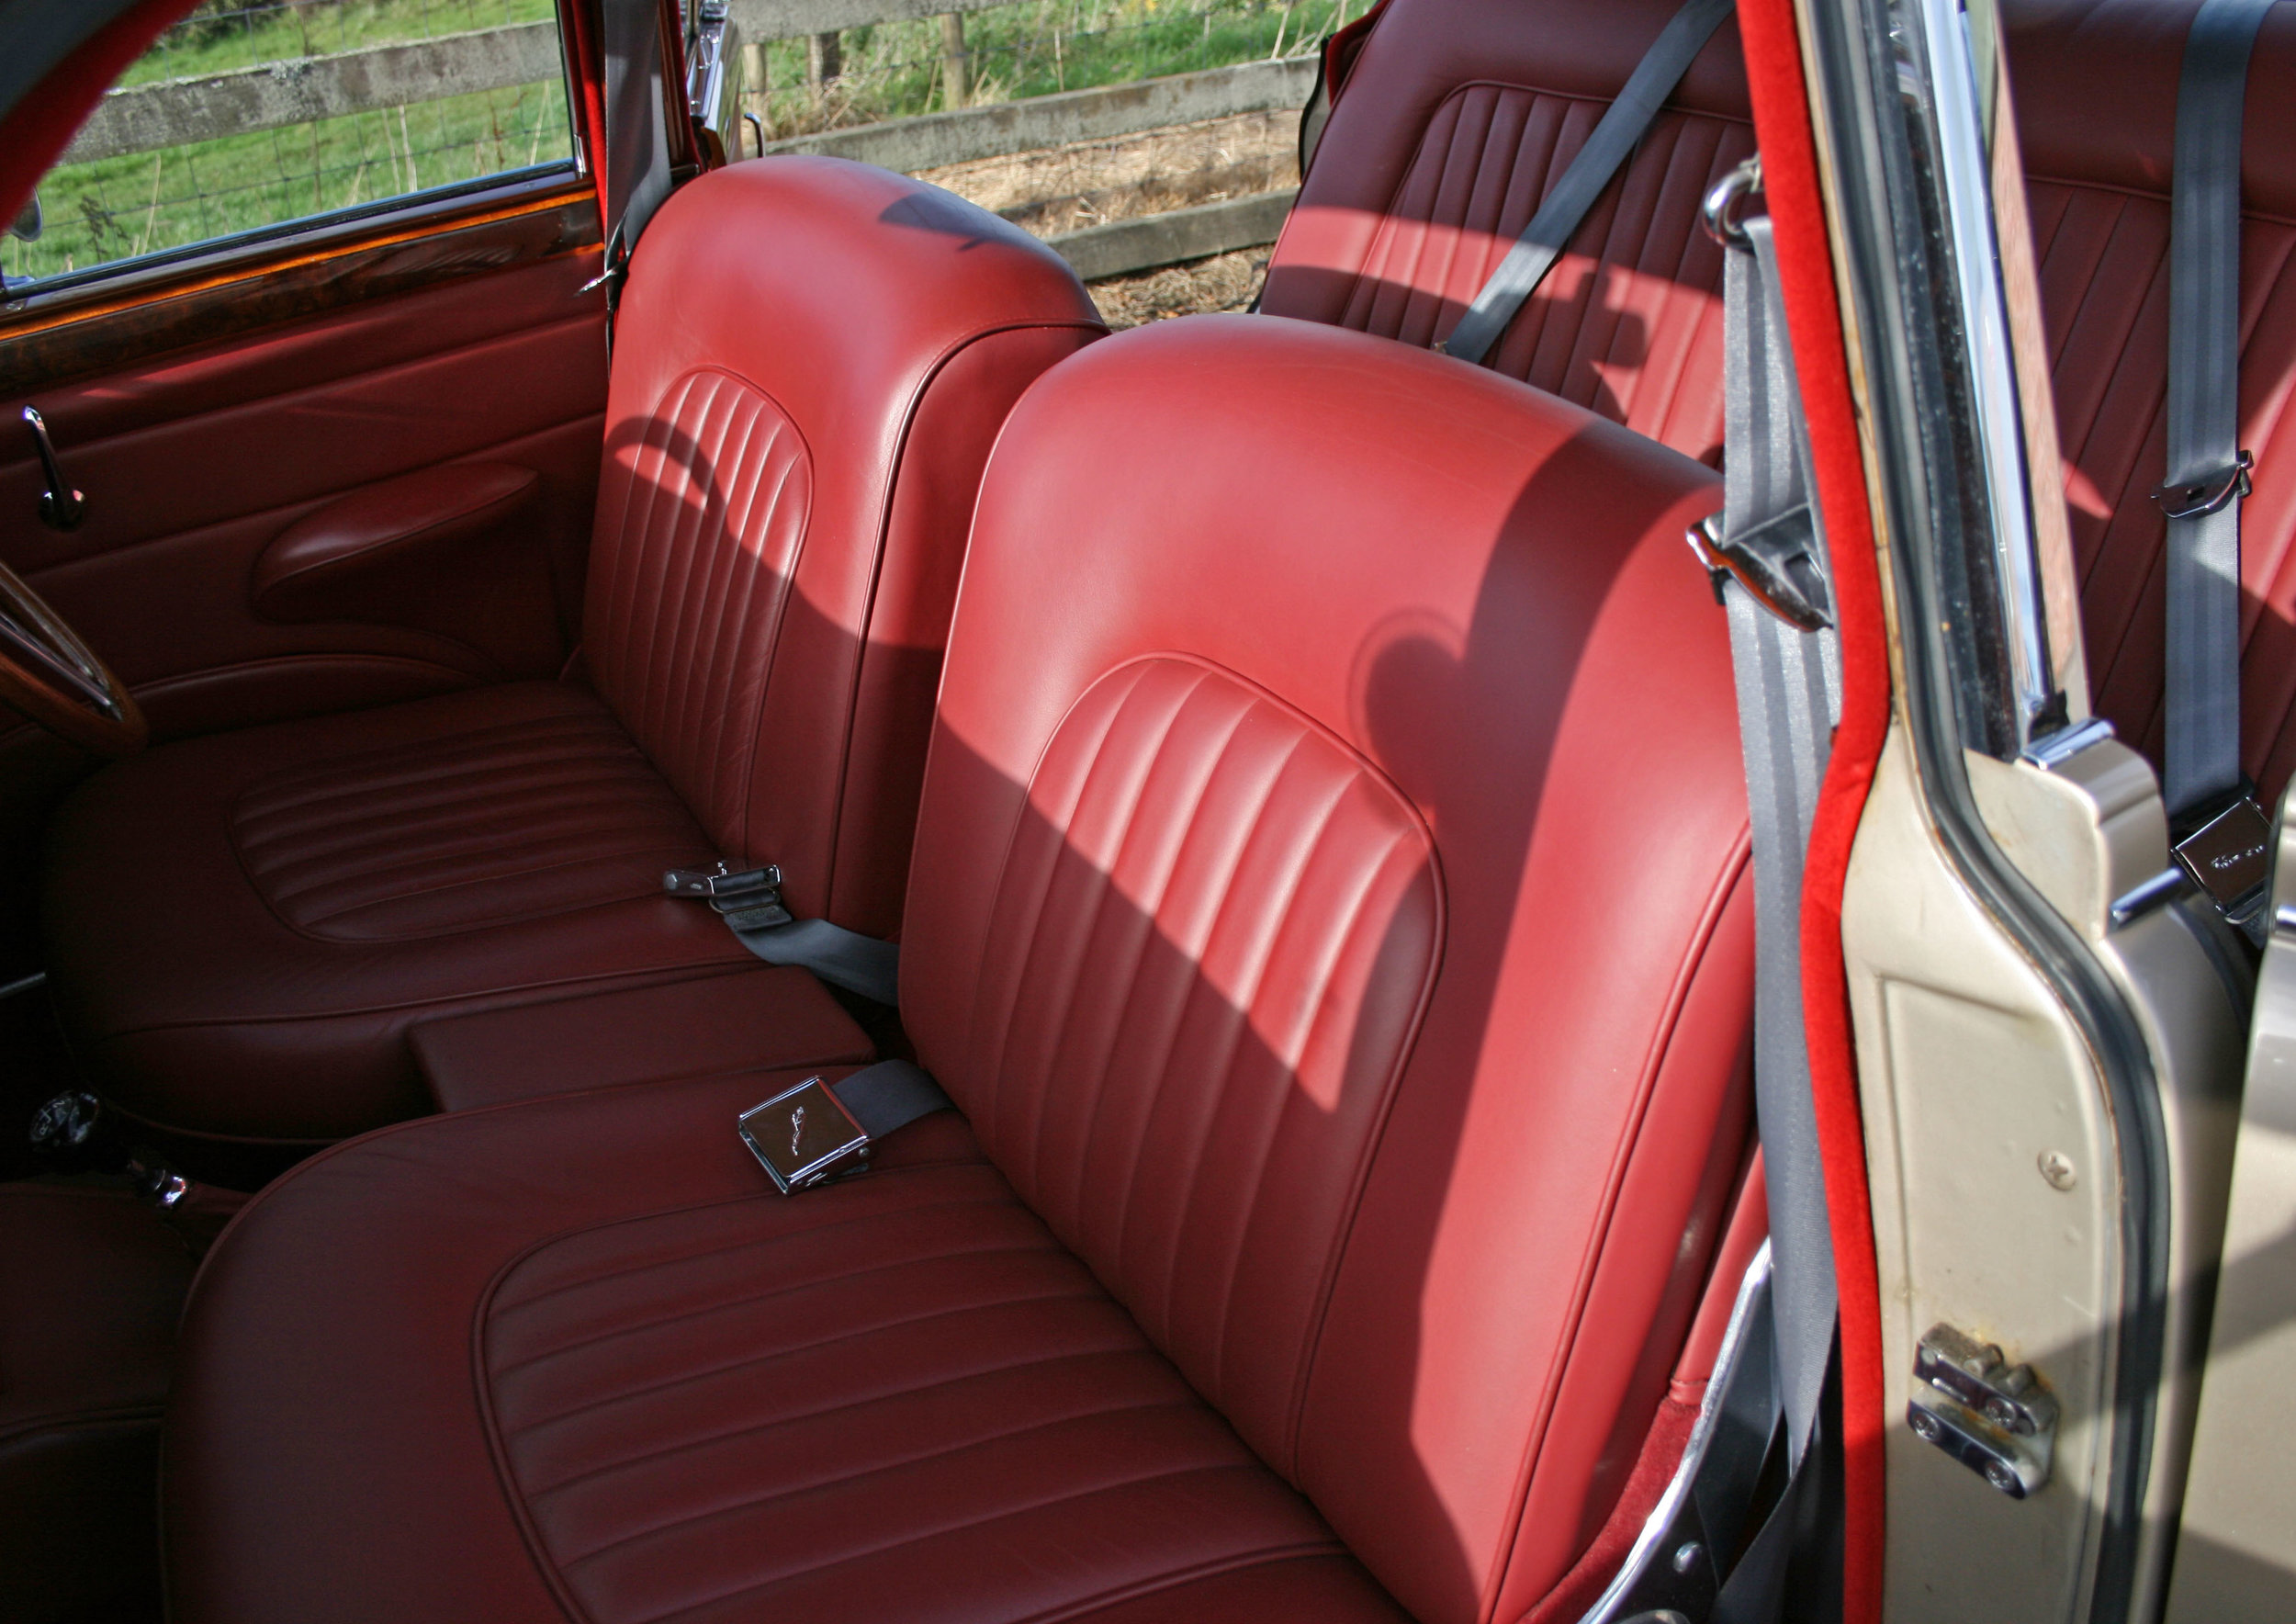 INTERIOR ALL SEATS.jpg